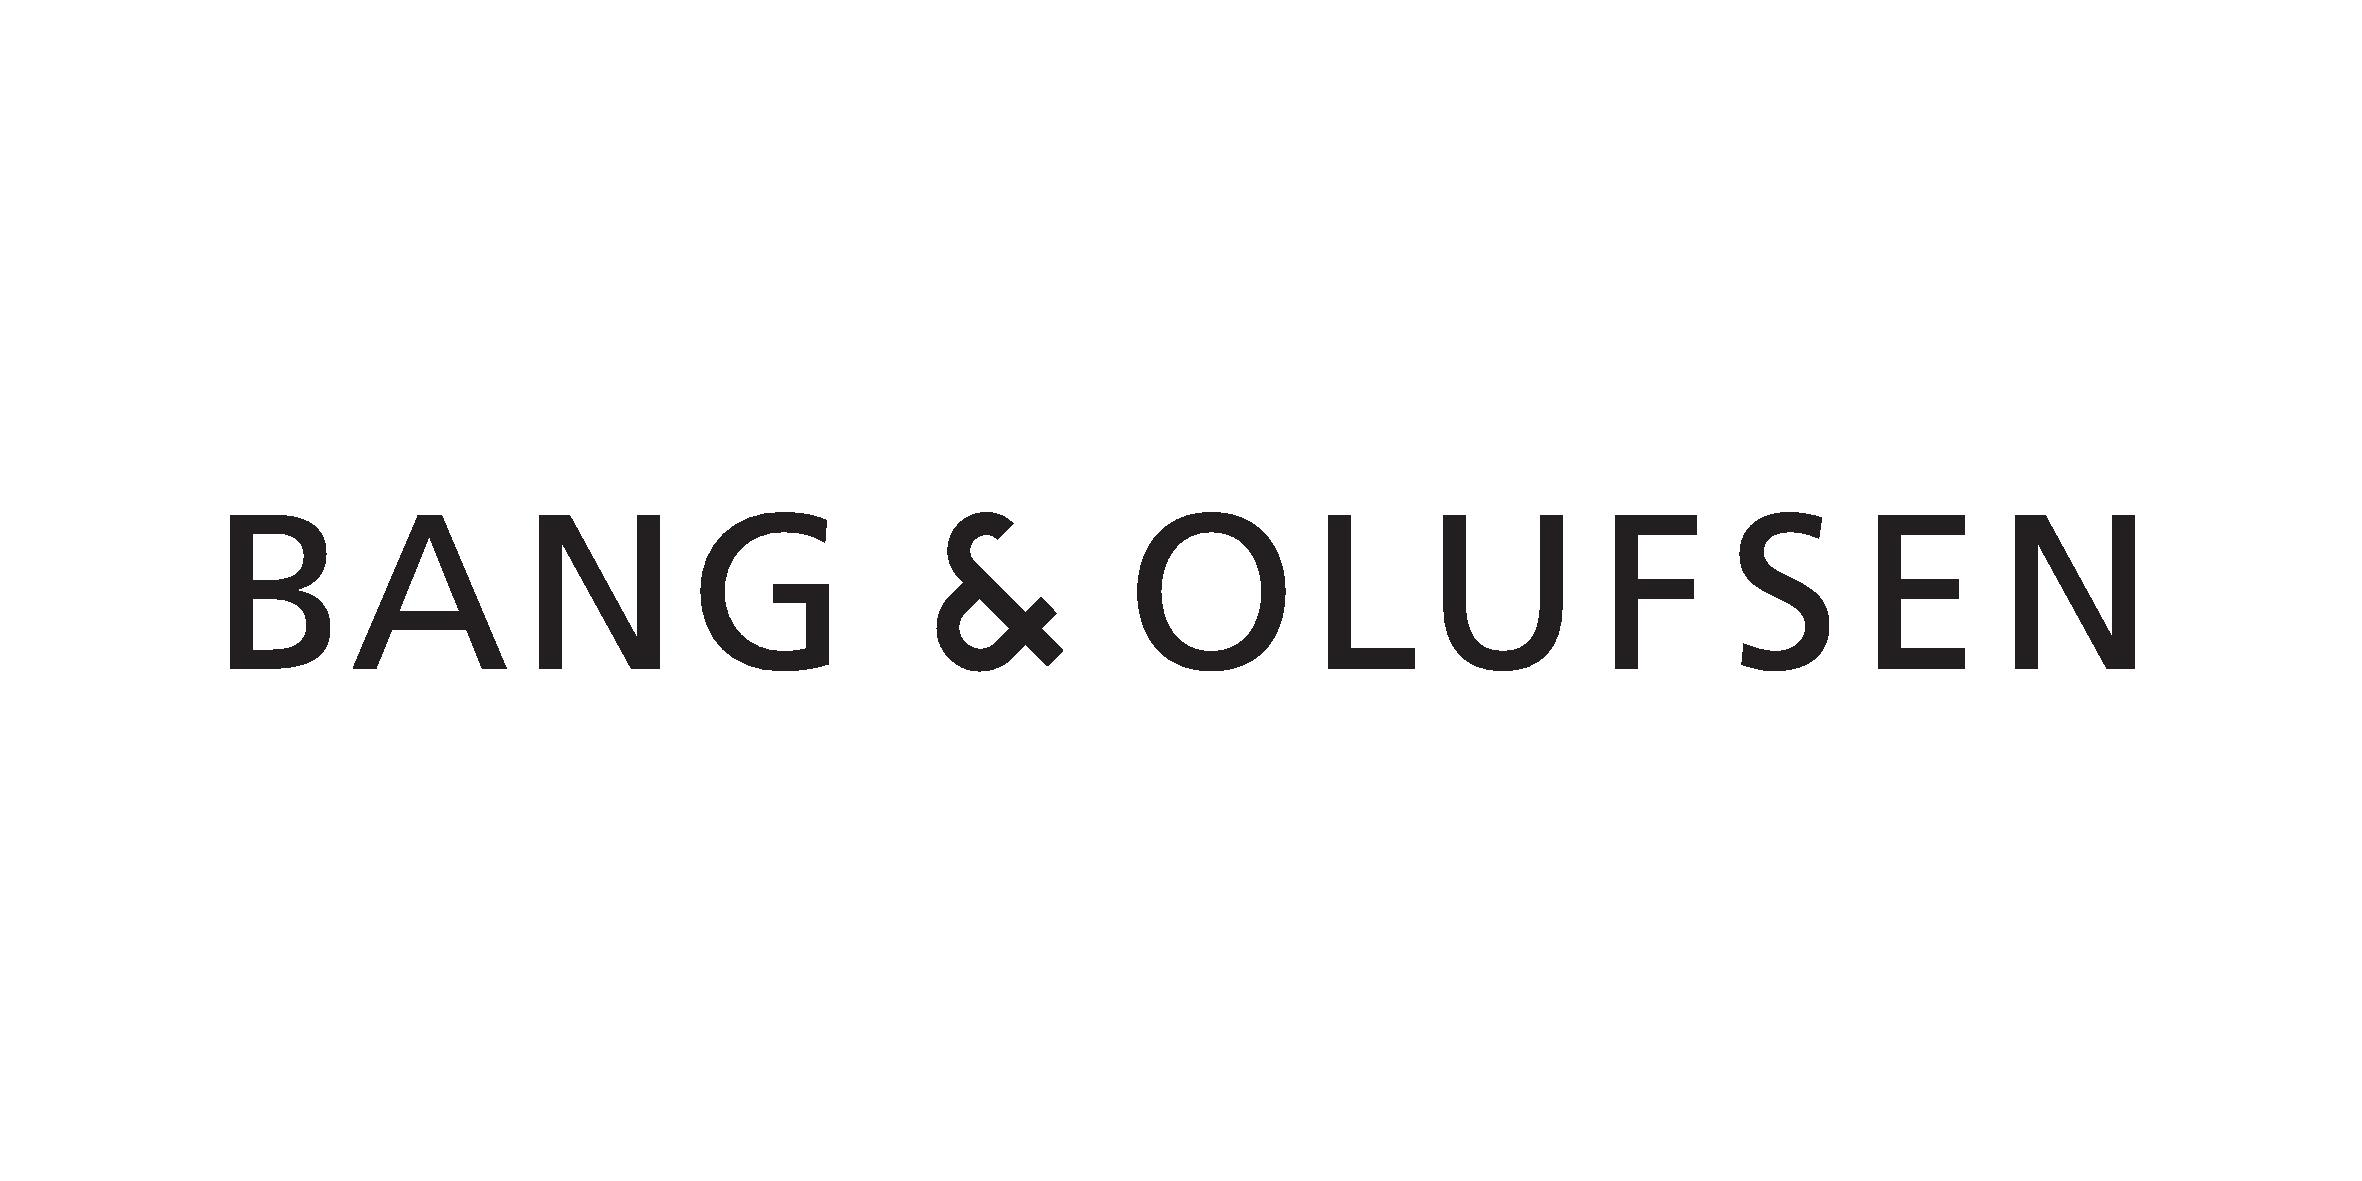 BANG & OLUFSEN Logo - Black